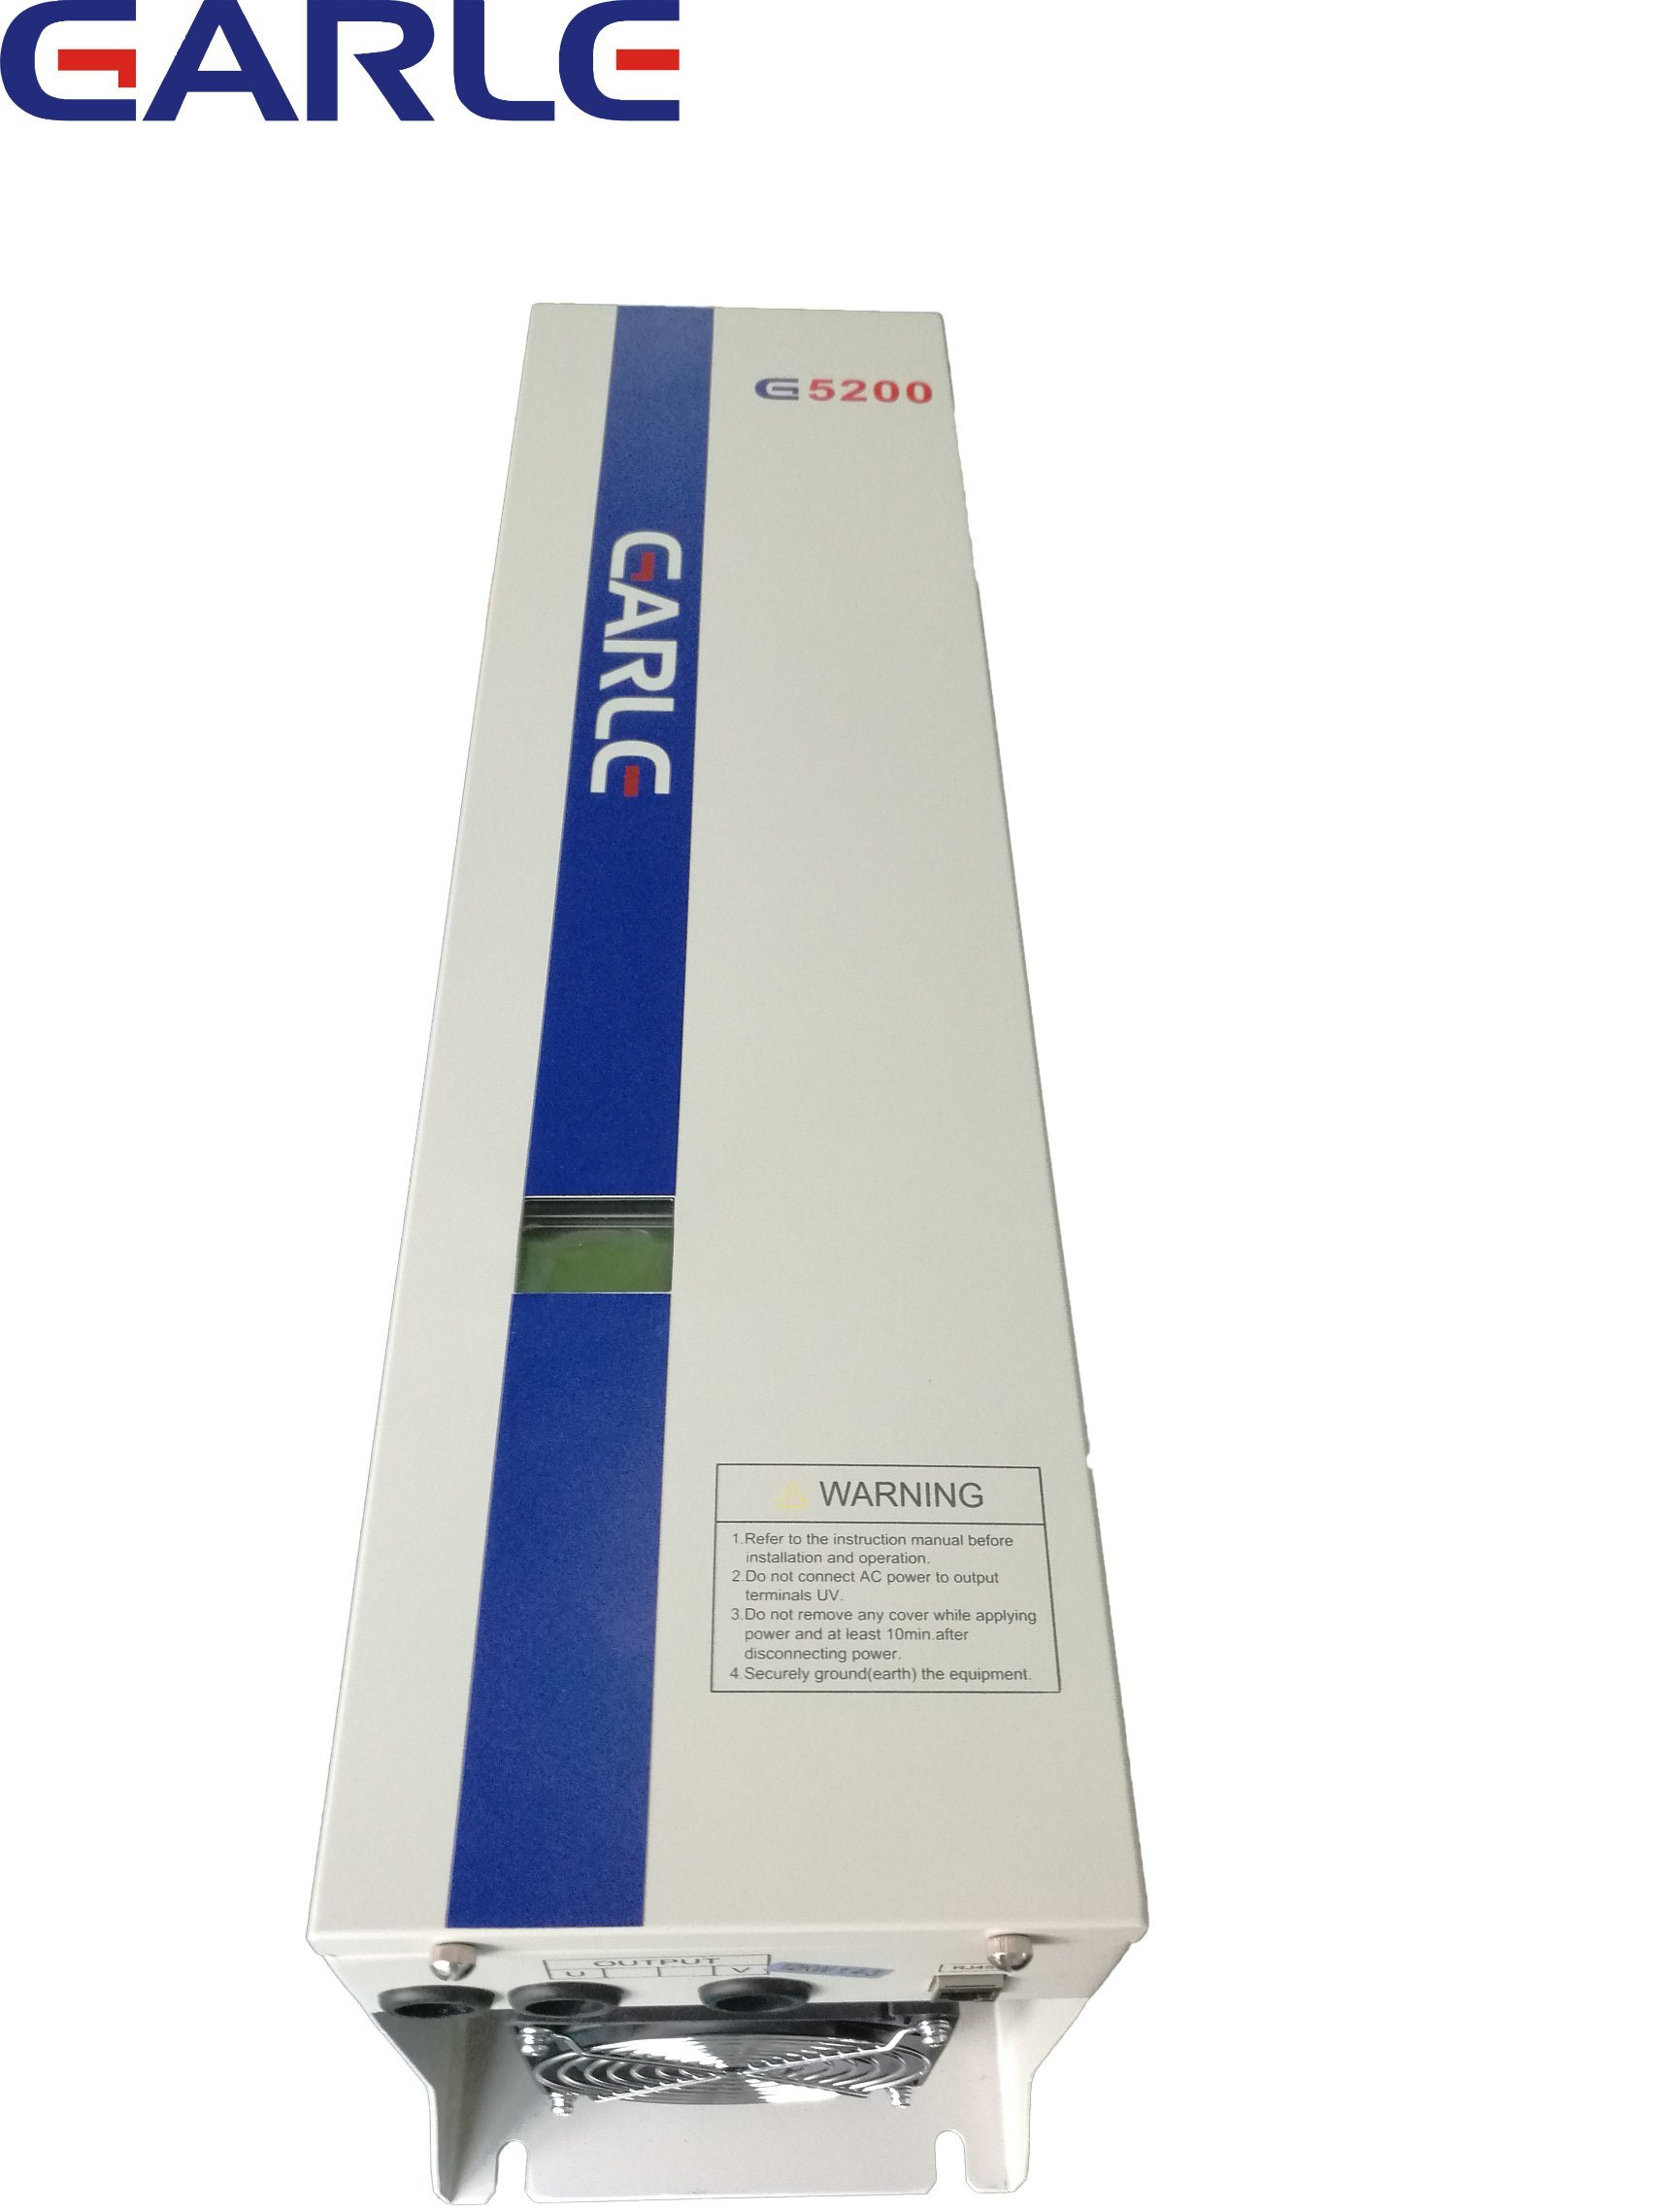 China Garle 8kw Electronic Ballast For Uv Lamp To Replace Magnetic